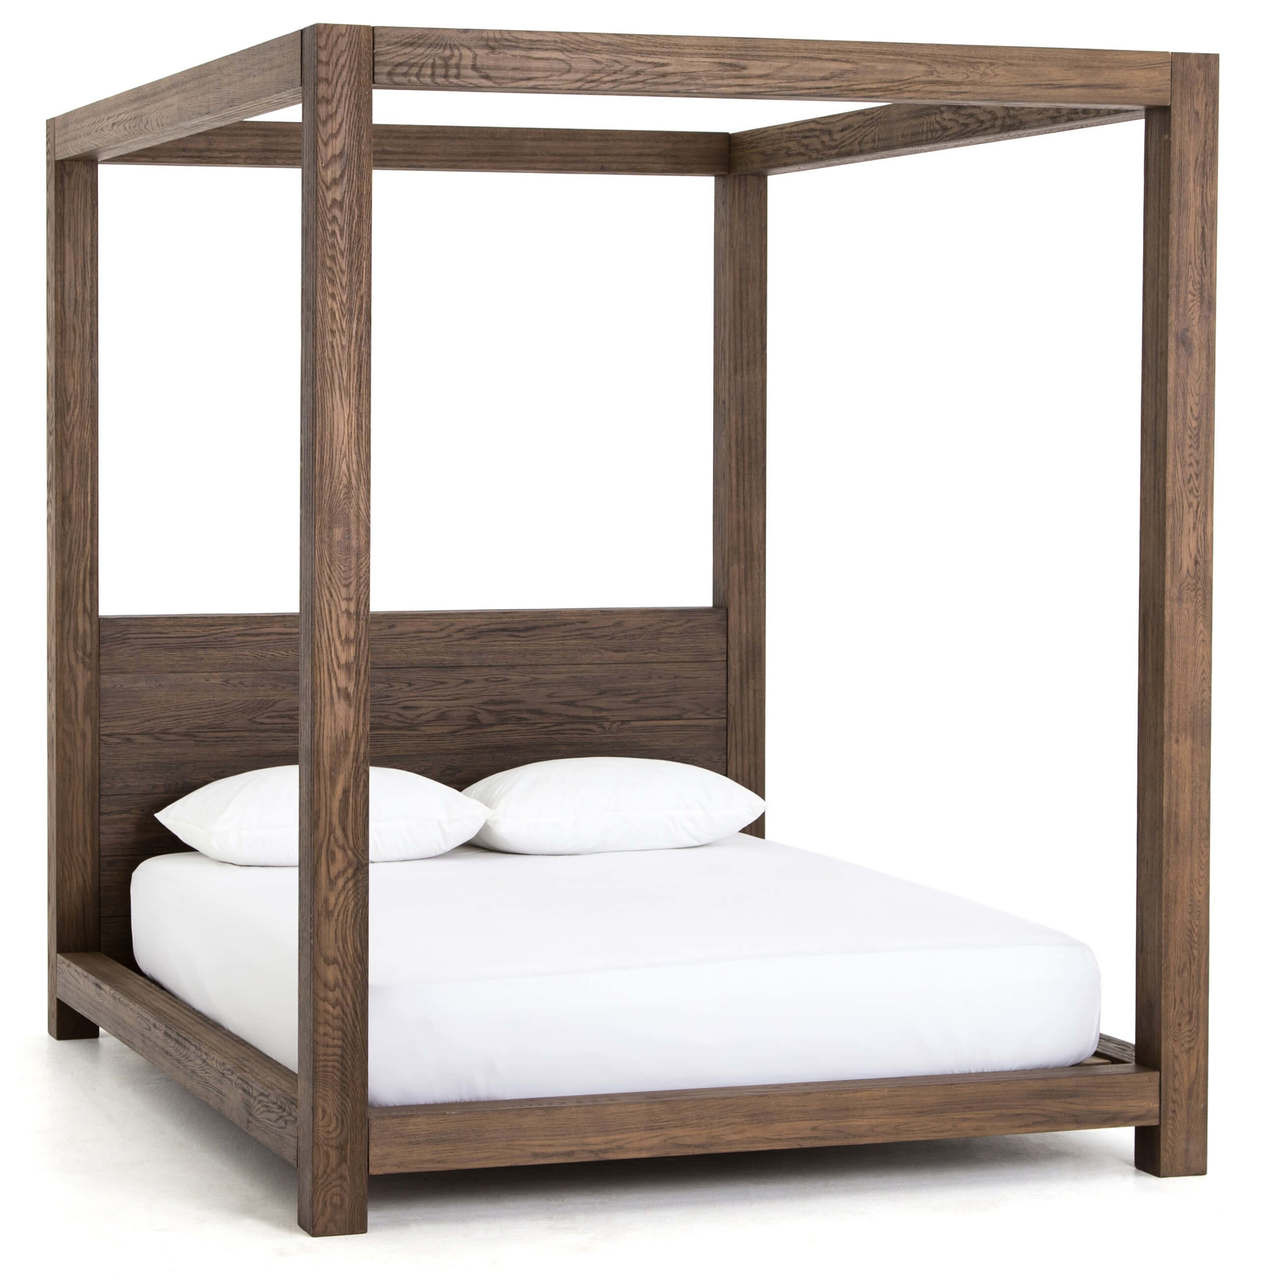 Williams Wood Platform Queen Canopy Bed Frame  sc 1 st  Zin Home & Williams Wood Platform Queen Canopy Bed Frame - Grey   Zin Home